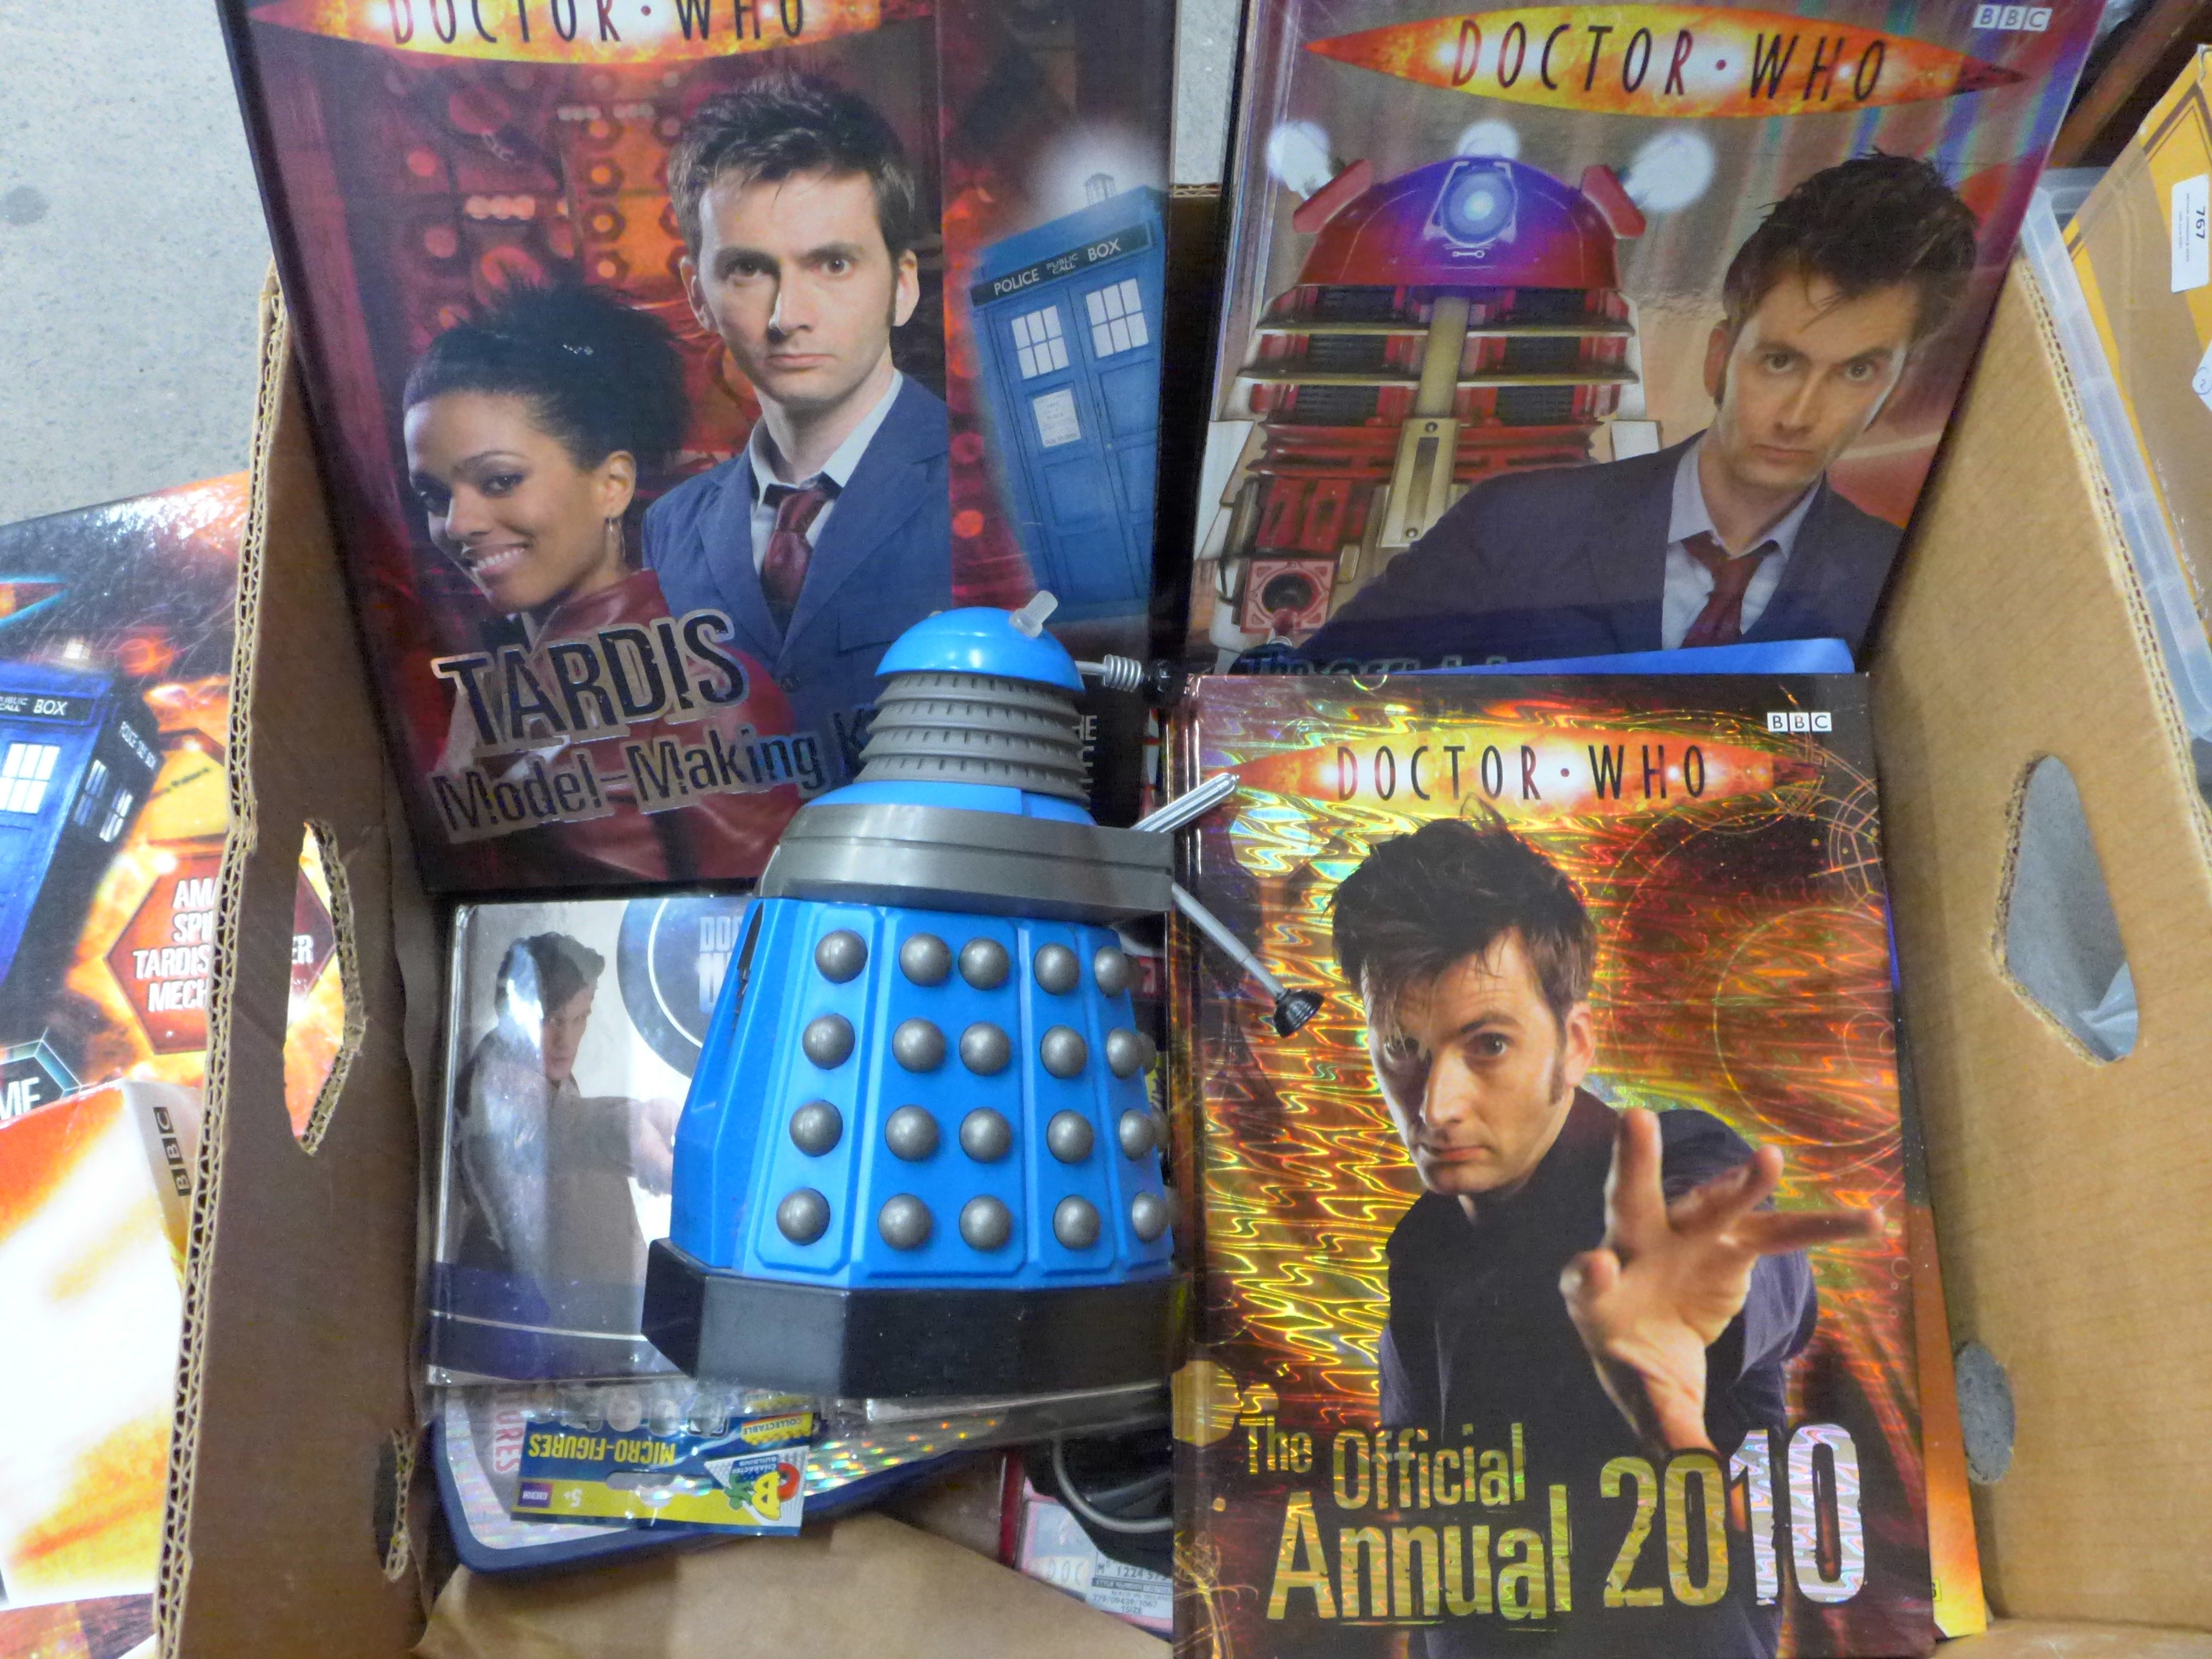 A collection of vintage Doctor Who merchandise and games, including a radio controlled Dalek - Image 2 of 3